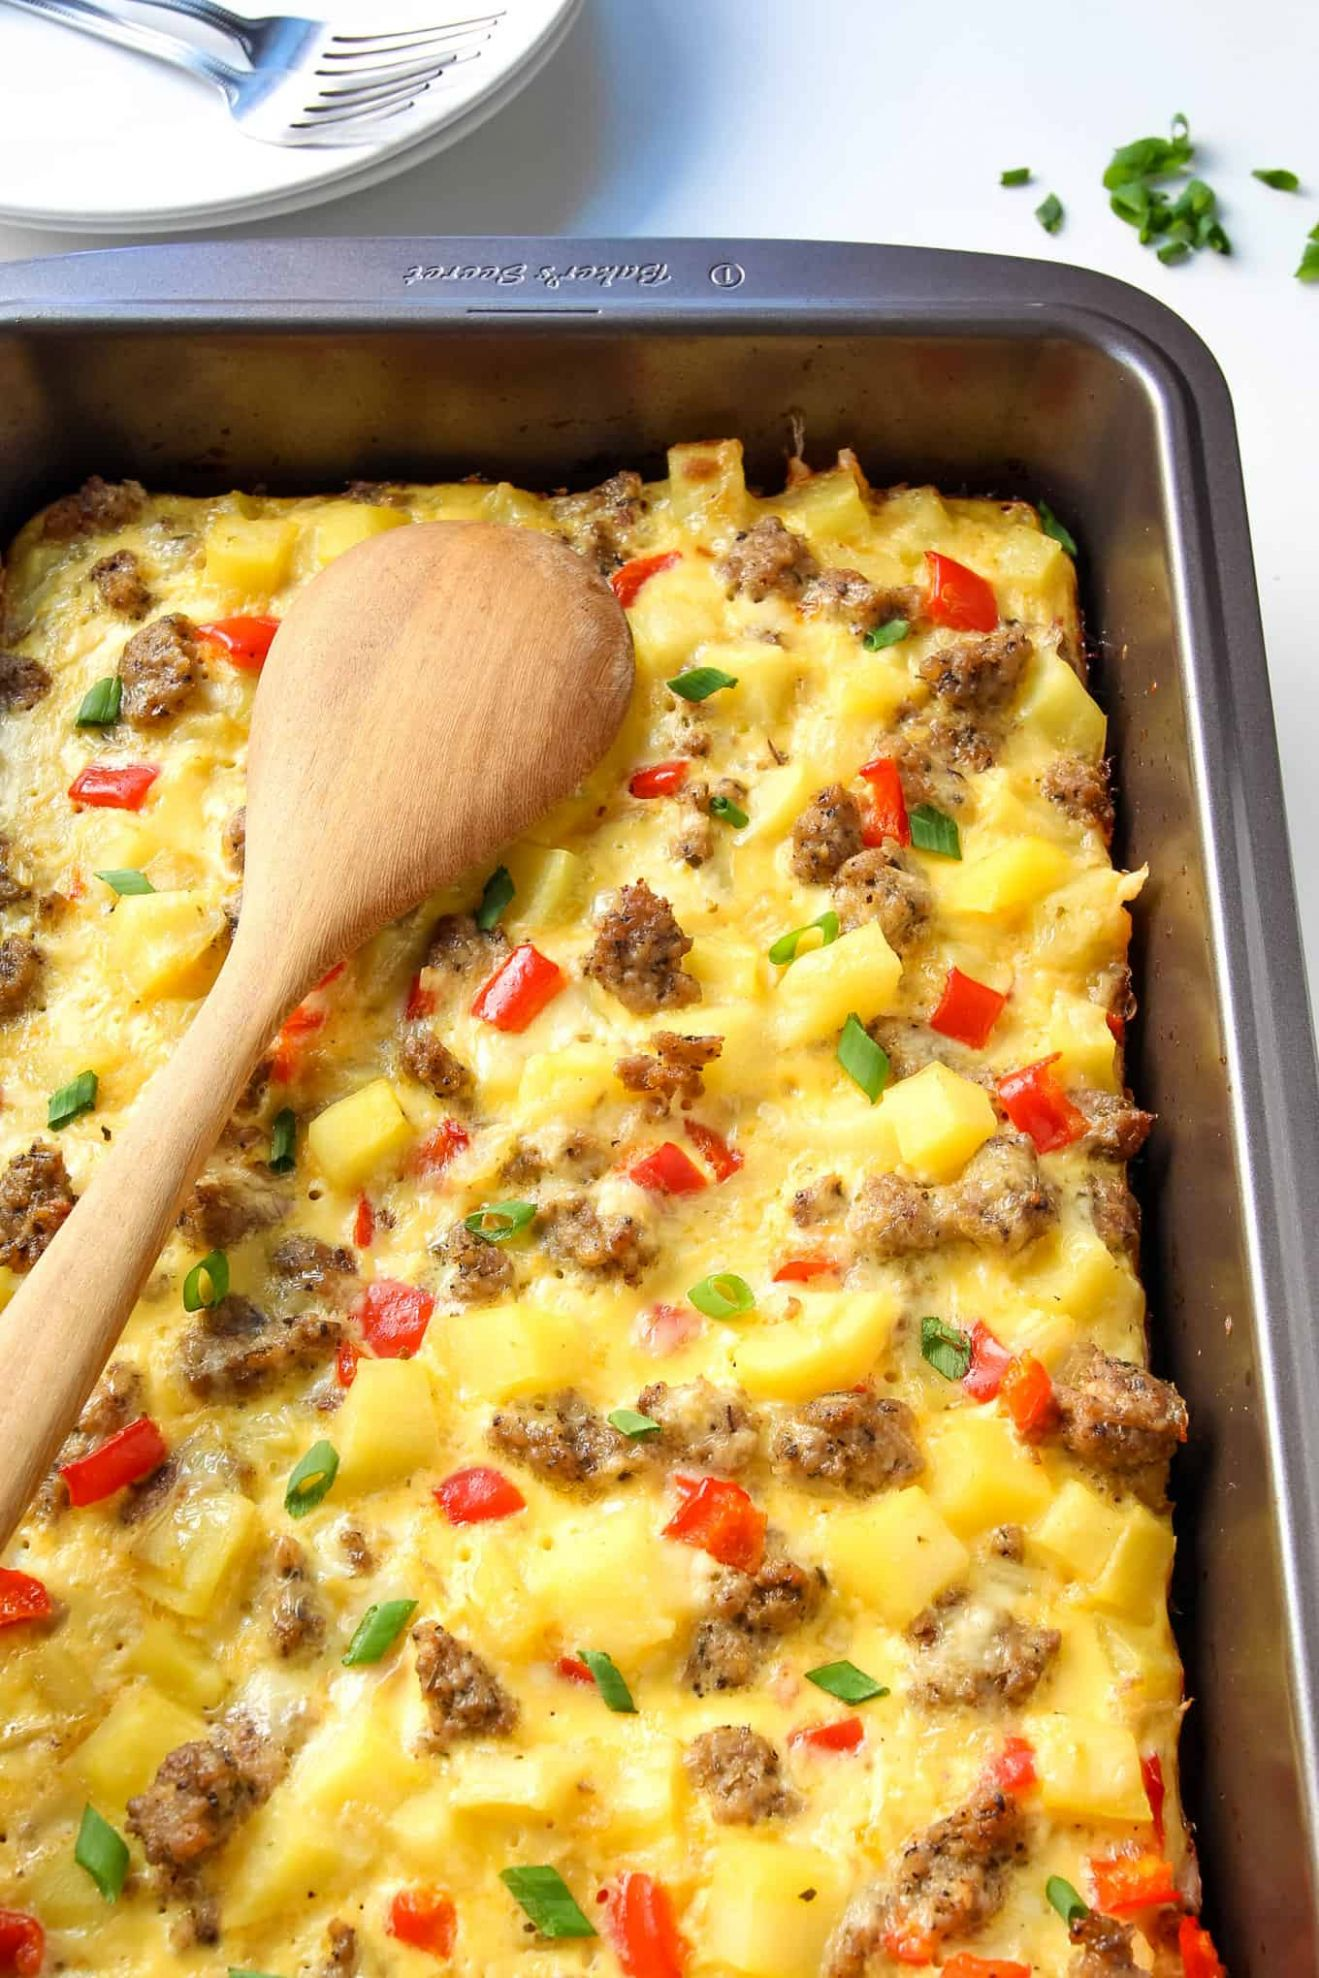 Breakfast Casserole with Eggs, Potatoes and Sausage - Recipes Egg Casserole With Sausage